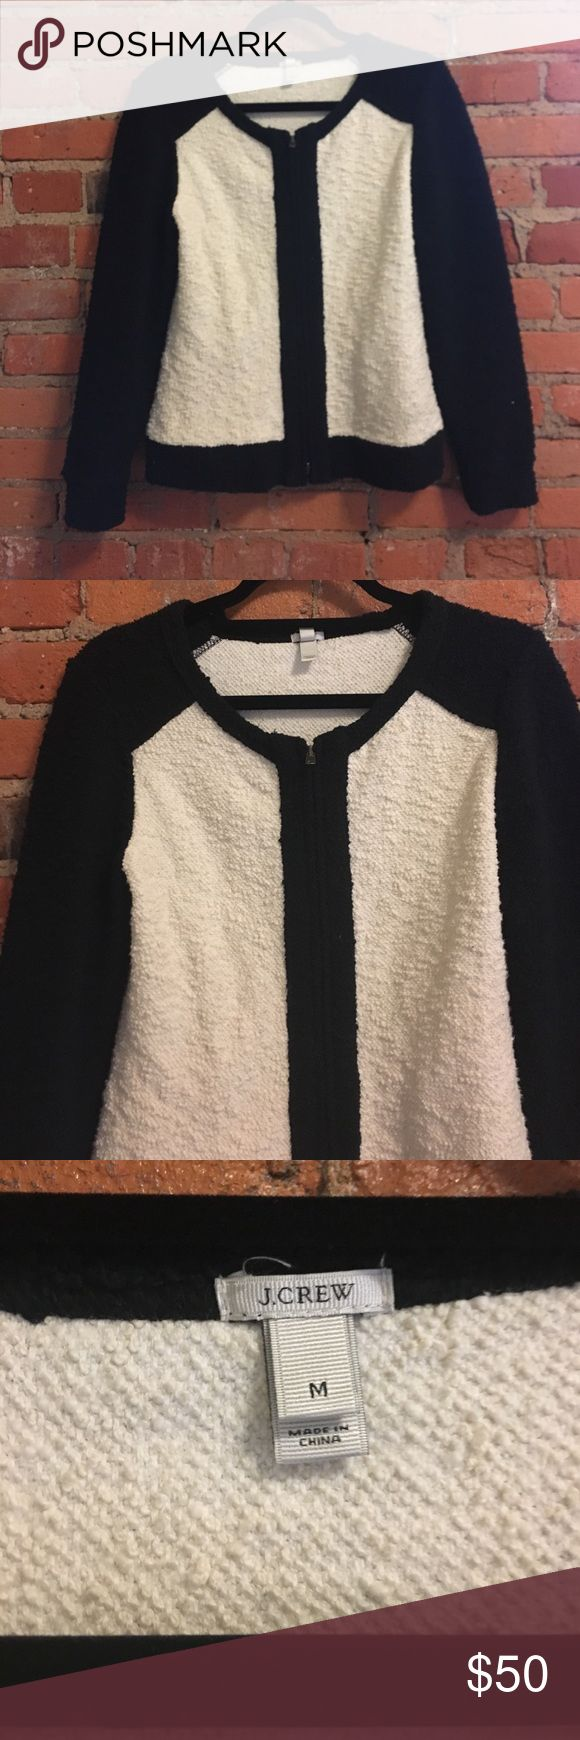 J.Crew black and cream zip up cardigan jacket M Excellent condition, maybe worn twice. Size medium. J. Crew Sweaters Cardigans